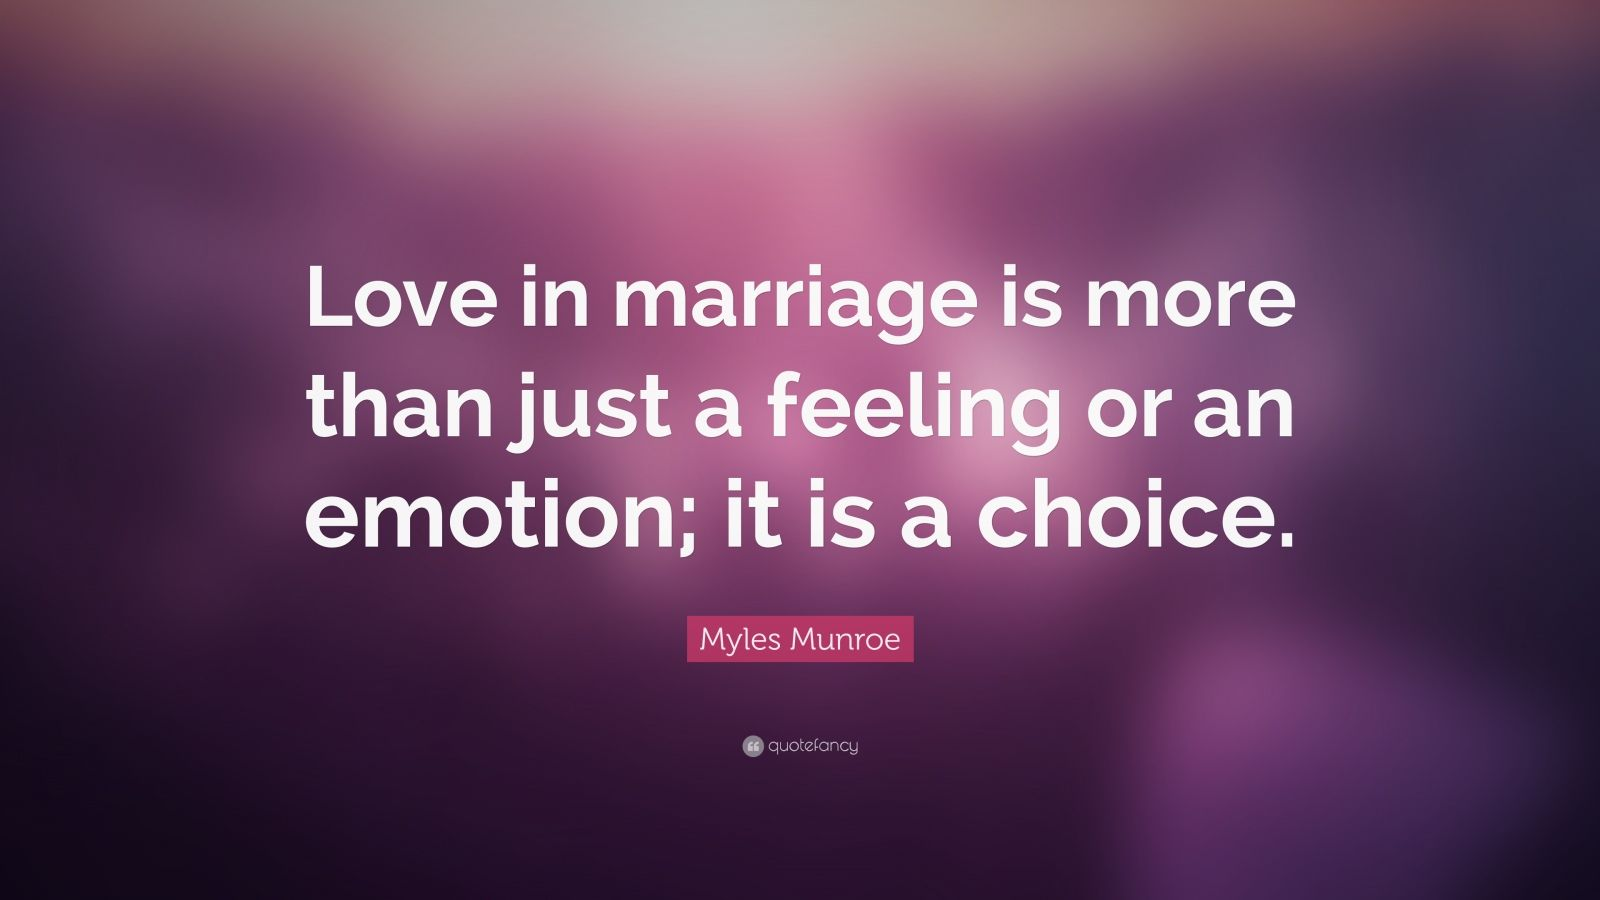 Quotes On Love And Marriage Myles Munroe Quotes 100 Wallpapers  Quotefancy